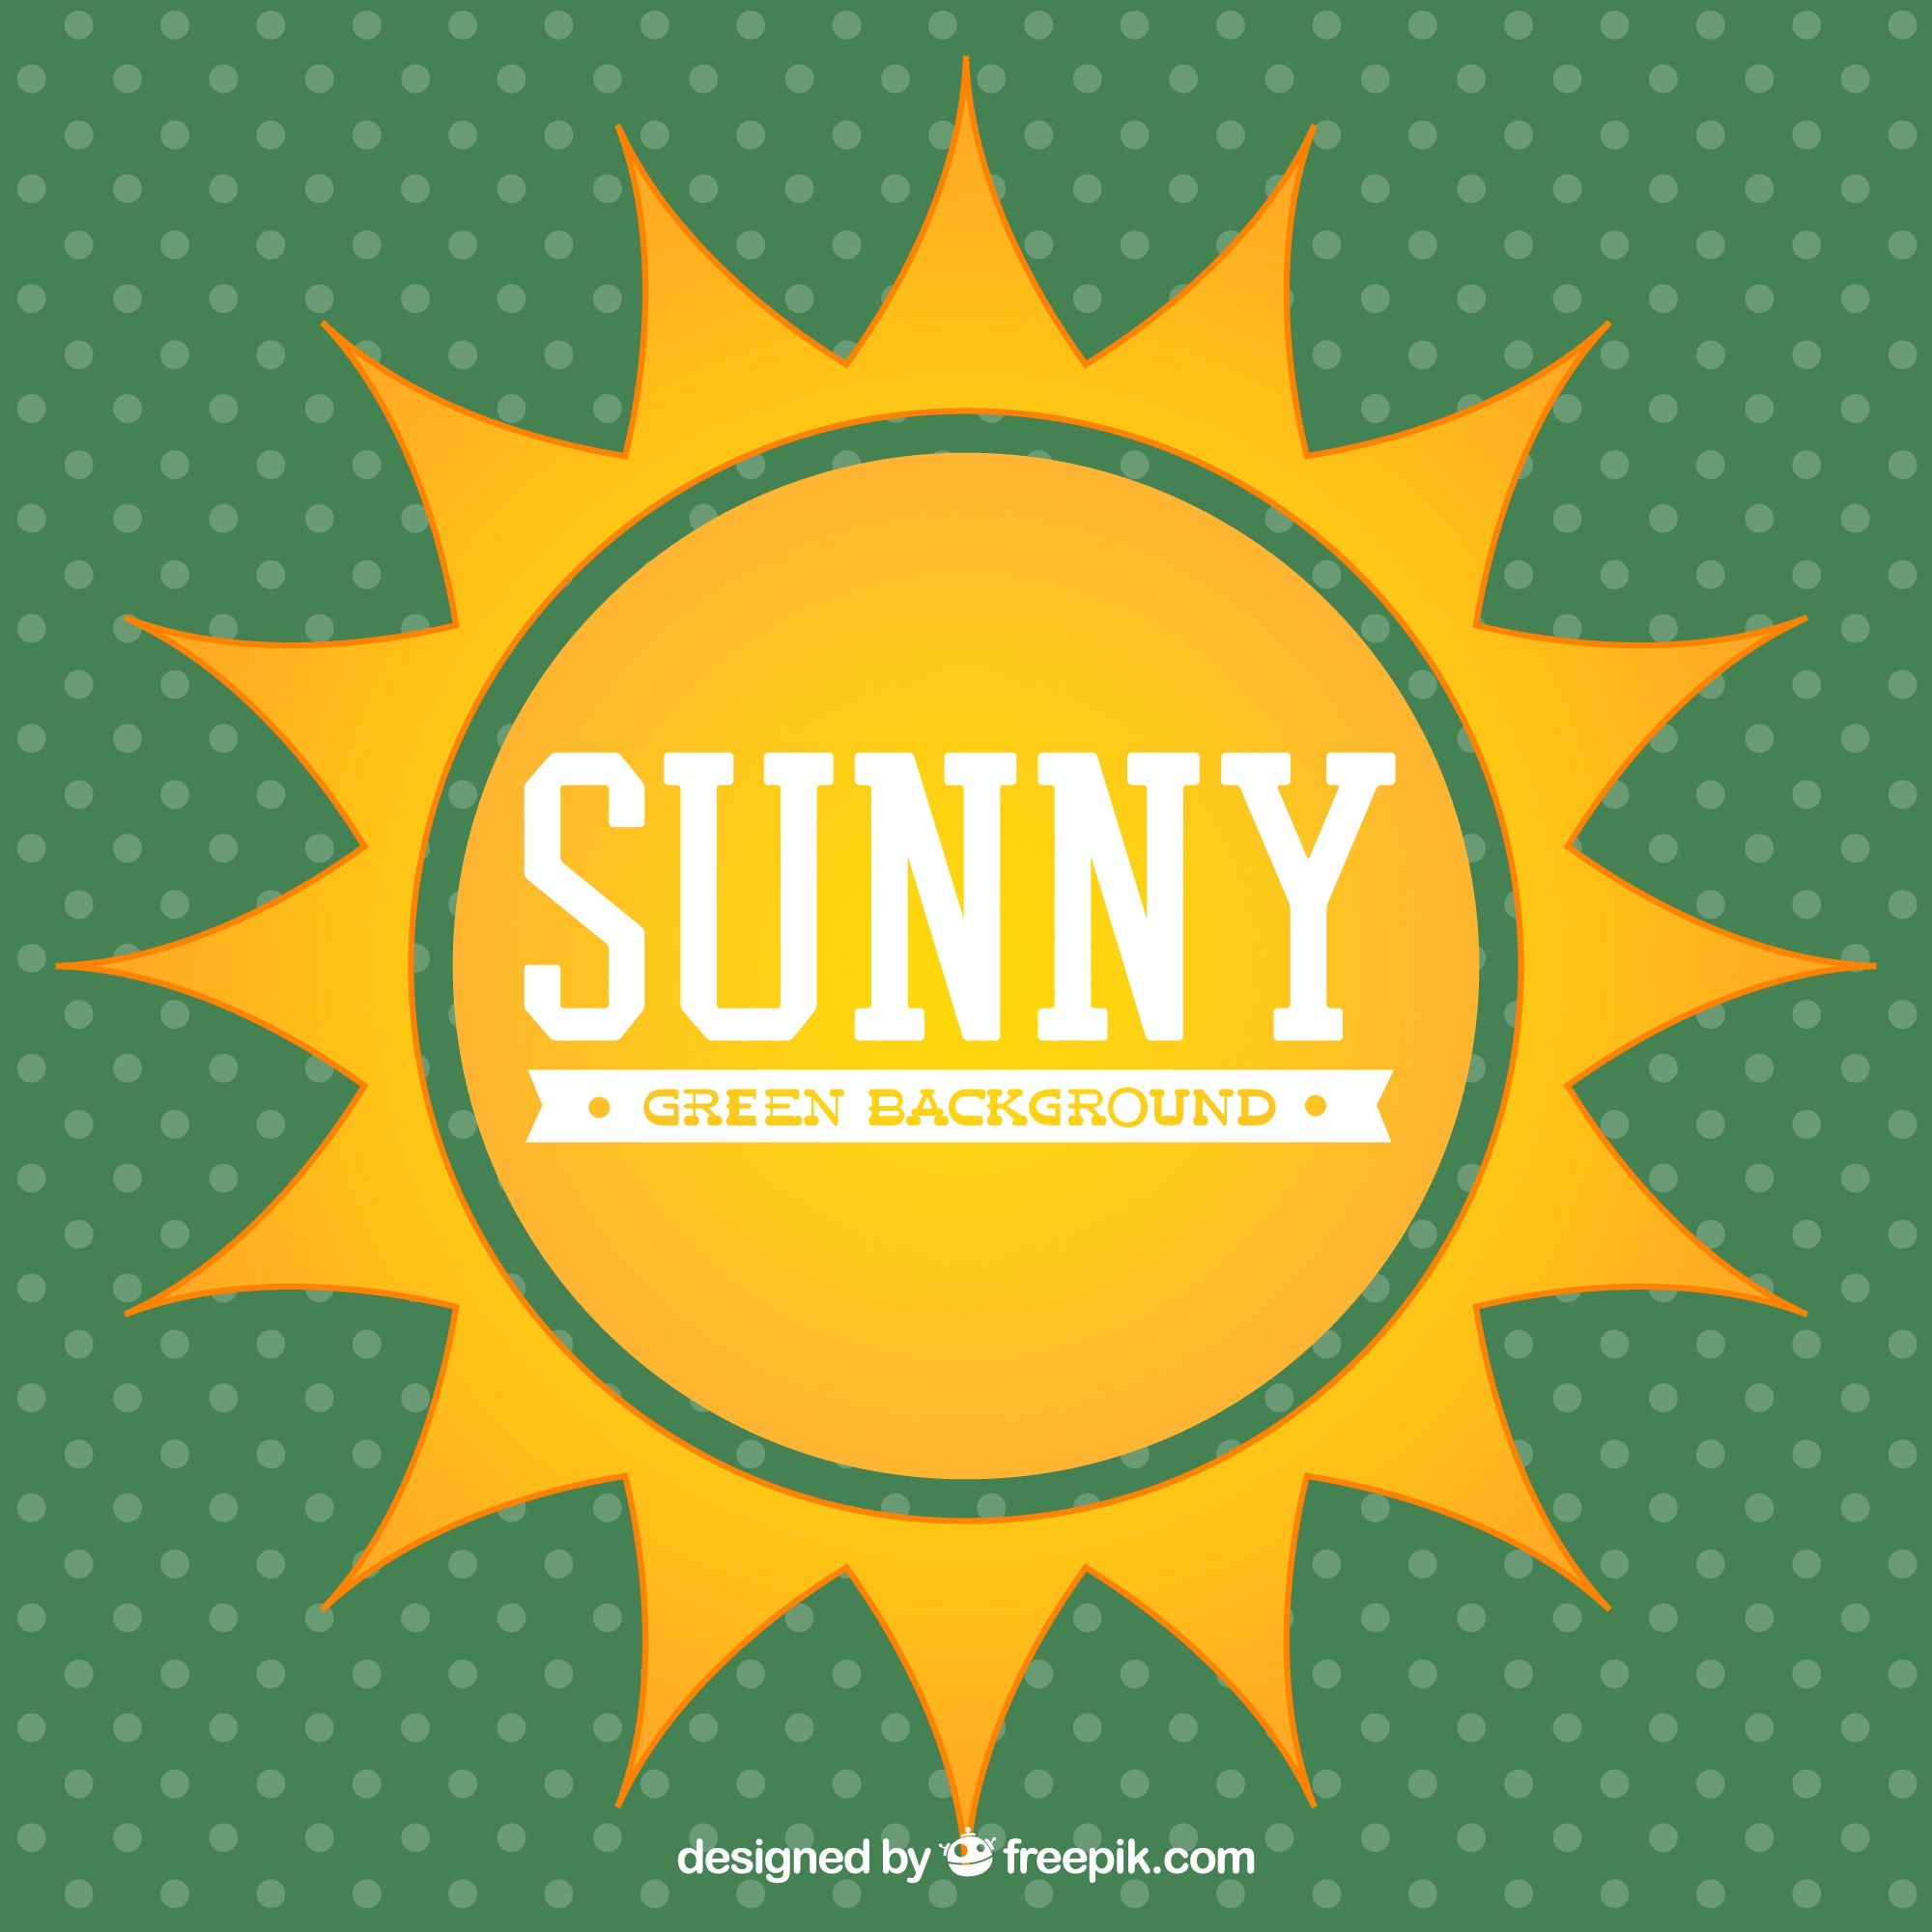 Sunny vector background